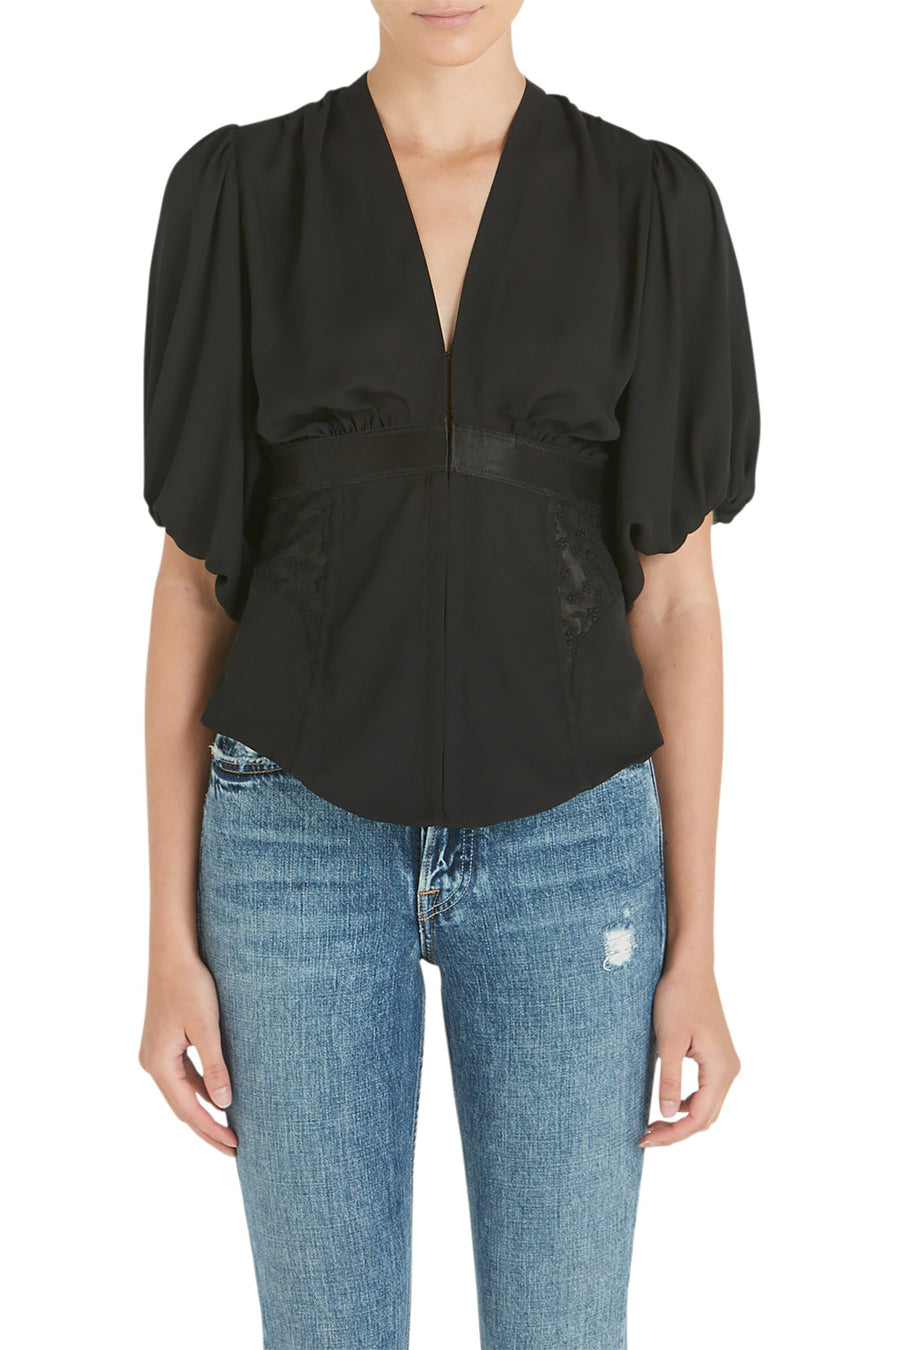 Alexis Lexia Top in black from The New Trend